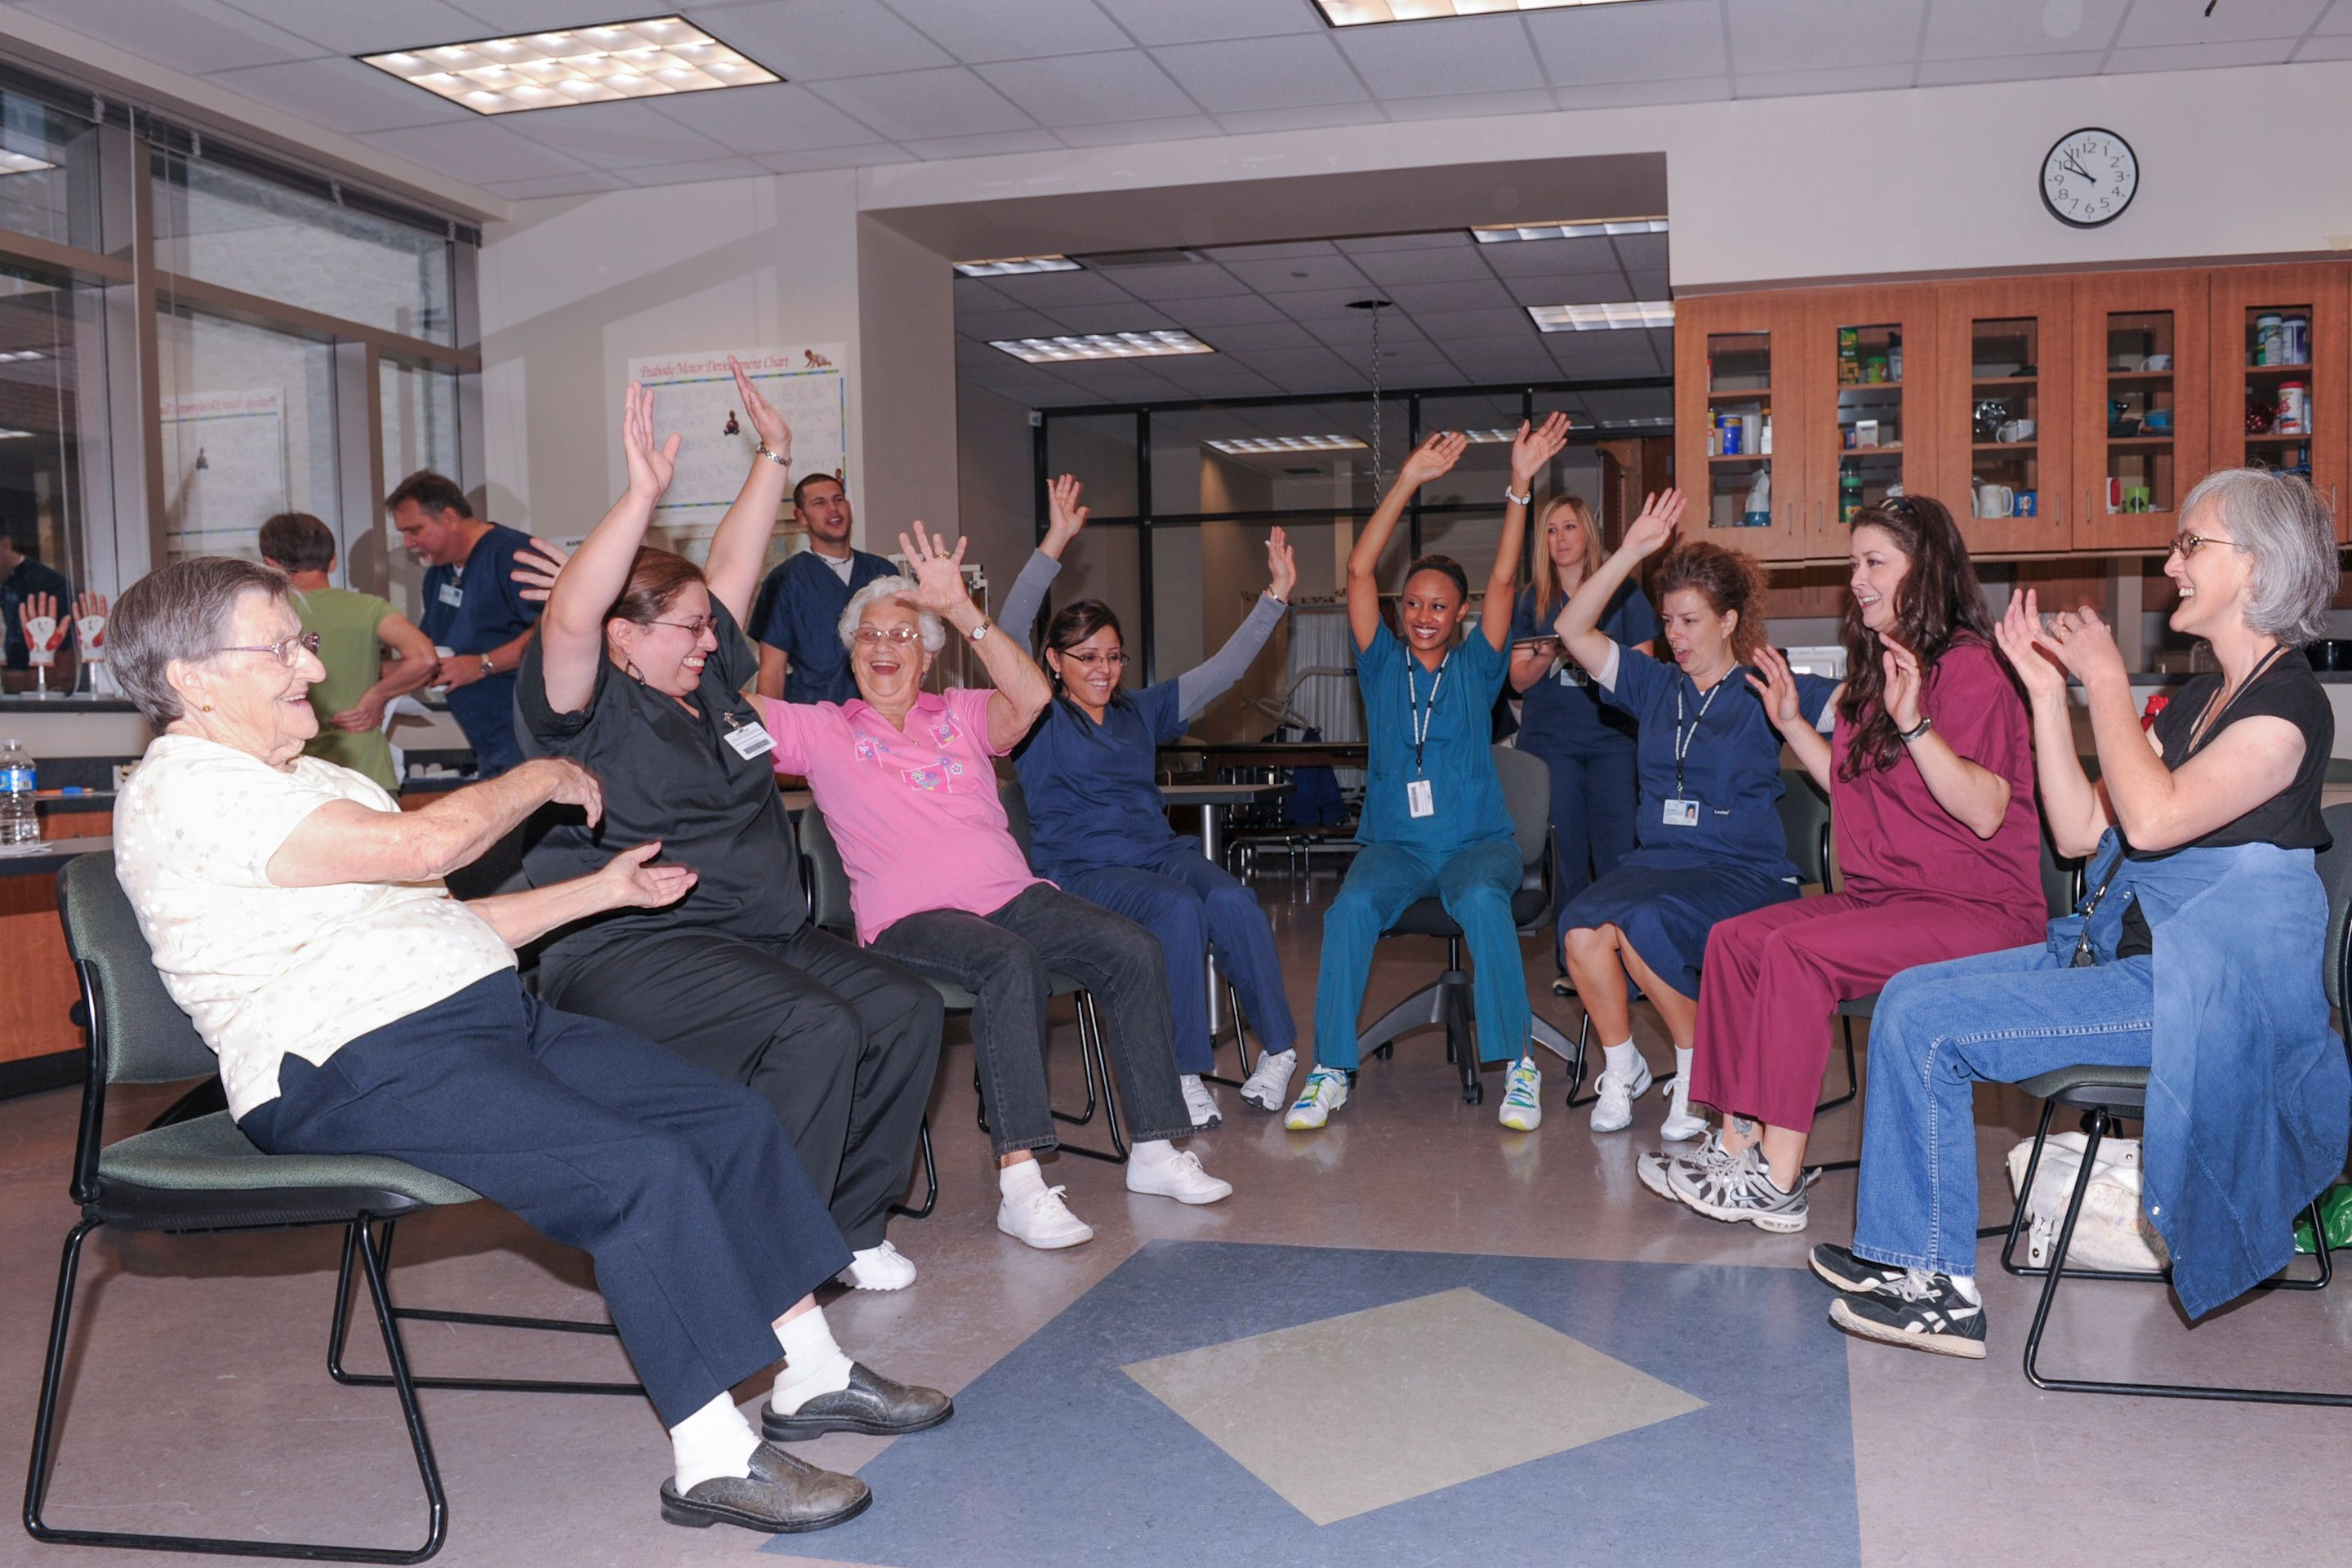 Occupational Therapy Assistant Students Work With Ota Patients To